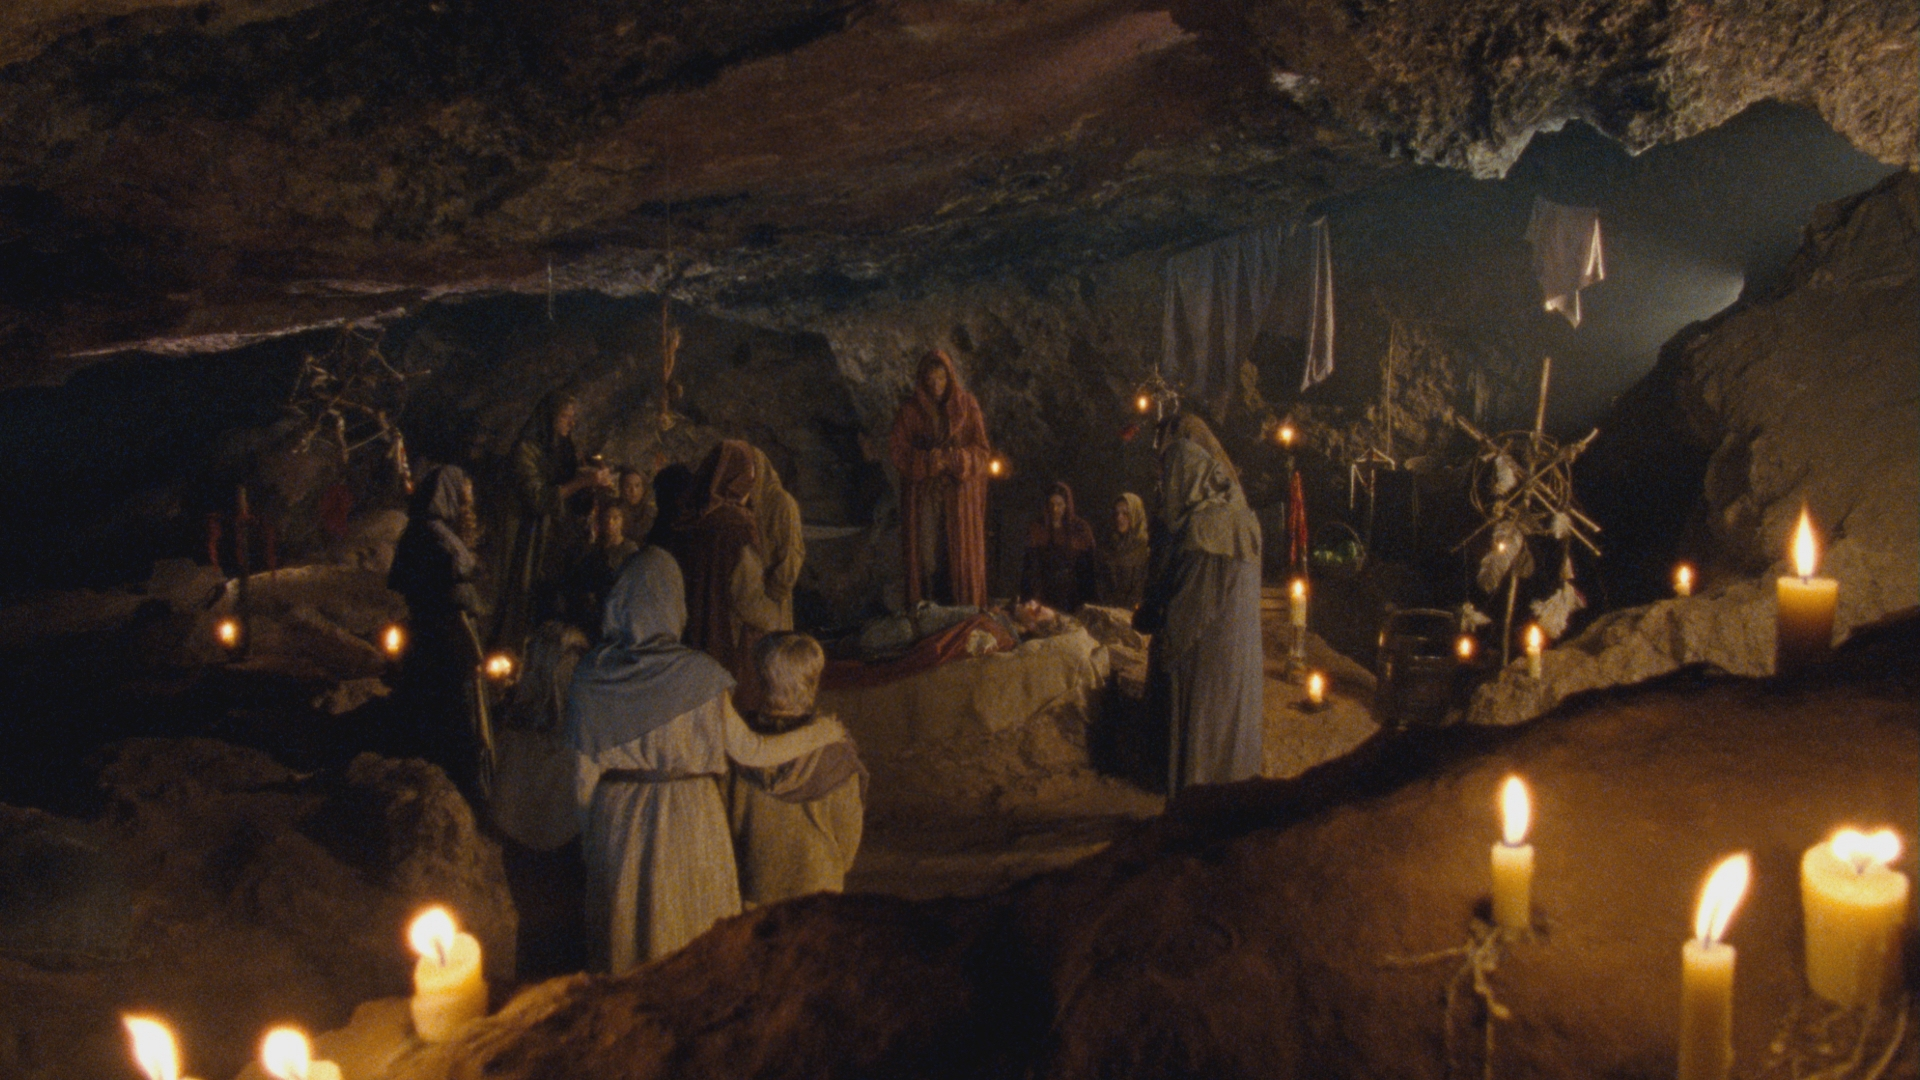 role and history of druids merlin and sorcery The grail code: the mystic druidic teachings of jesus of nazareth  merlin was  created as a combination of several historical and  were adapted, eventually  leading to merlin's role as arthur's tutor  she swears that she will never fall in  love with him, unless he teaches her all of the magic he knows.